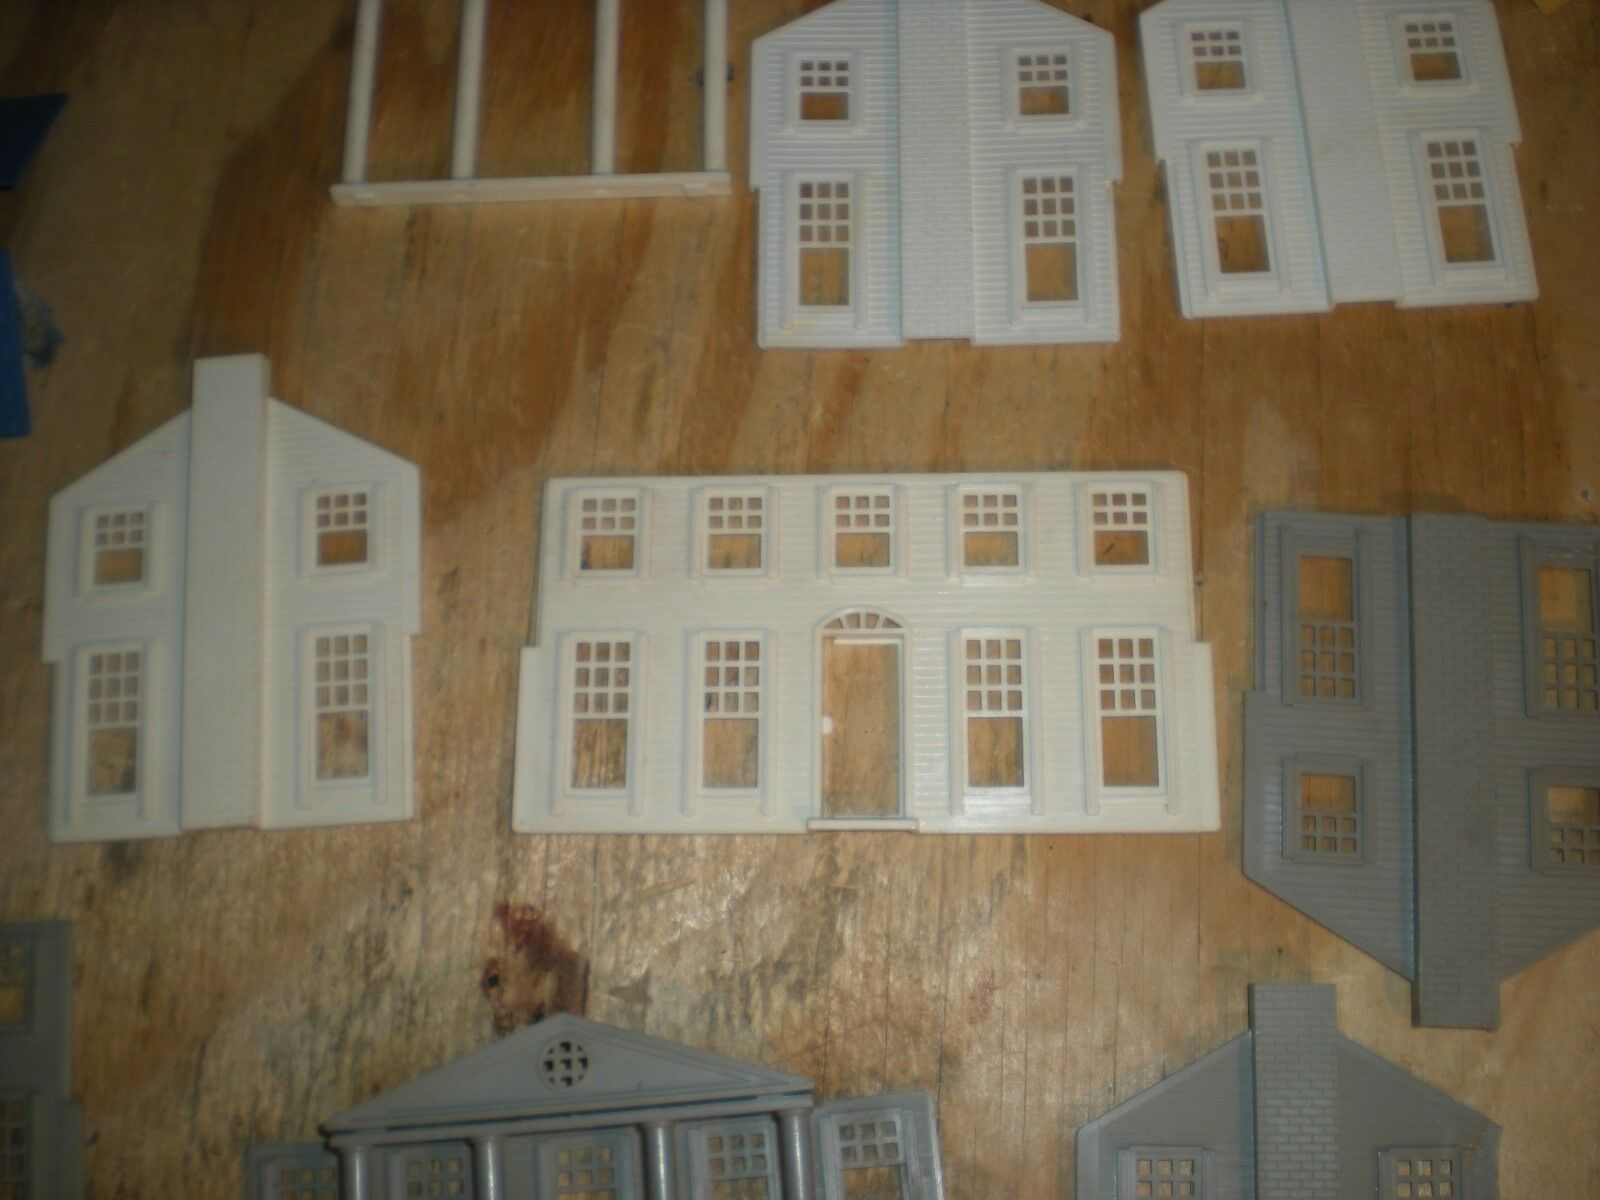 Littletown  103   southern southern southern colonial  house   parts  e pieces   no scatola  30fba9